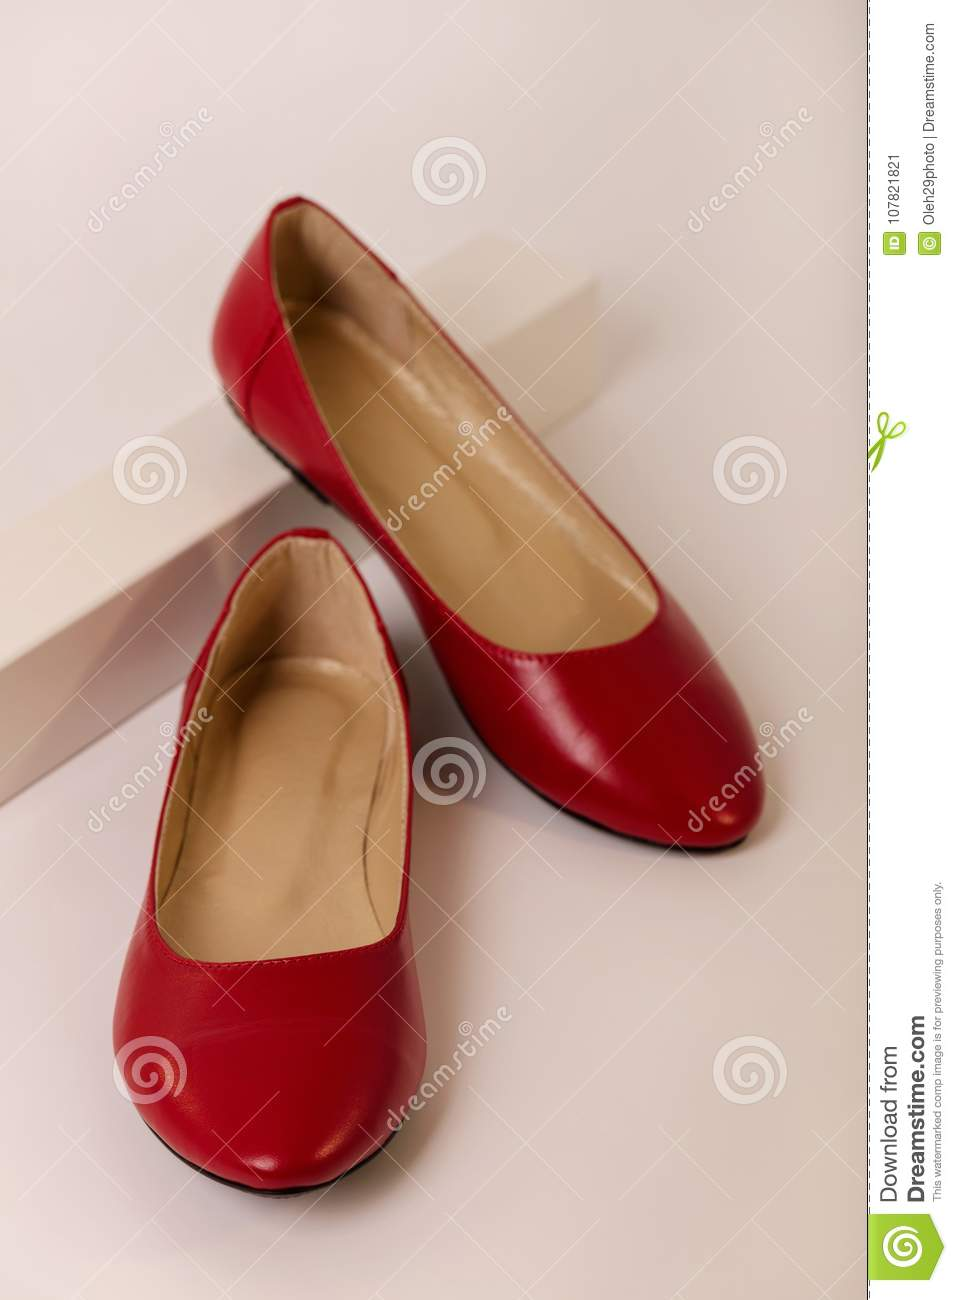 Female Shoes Of Red Color On A White